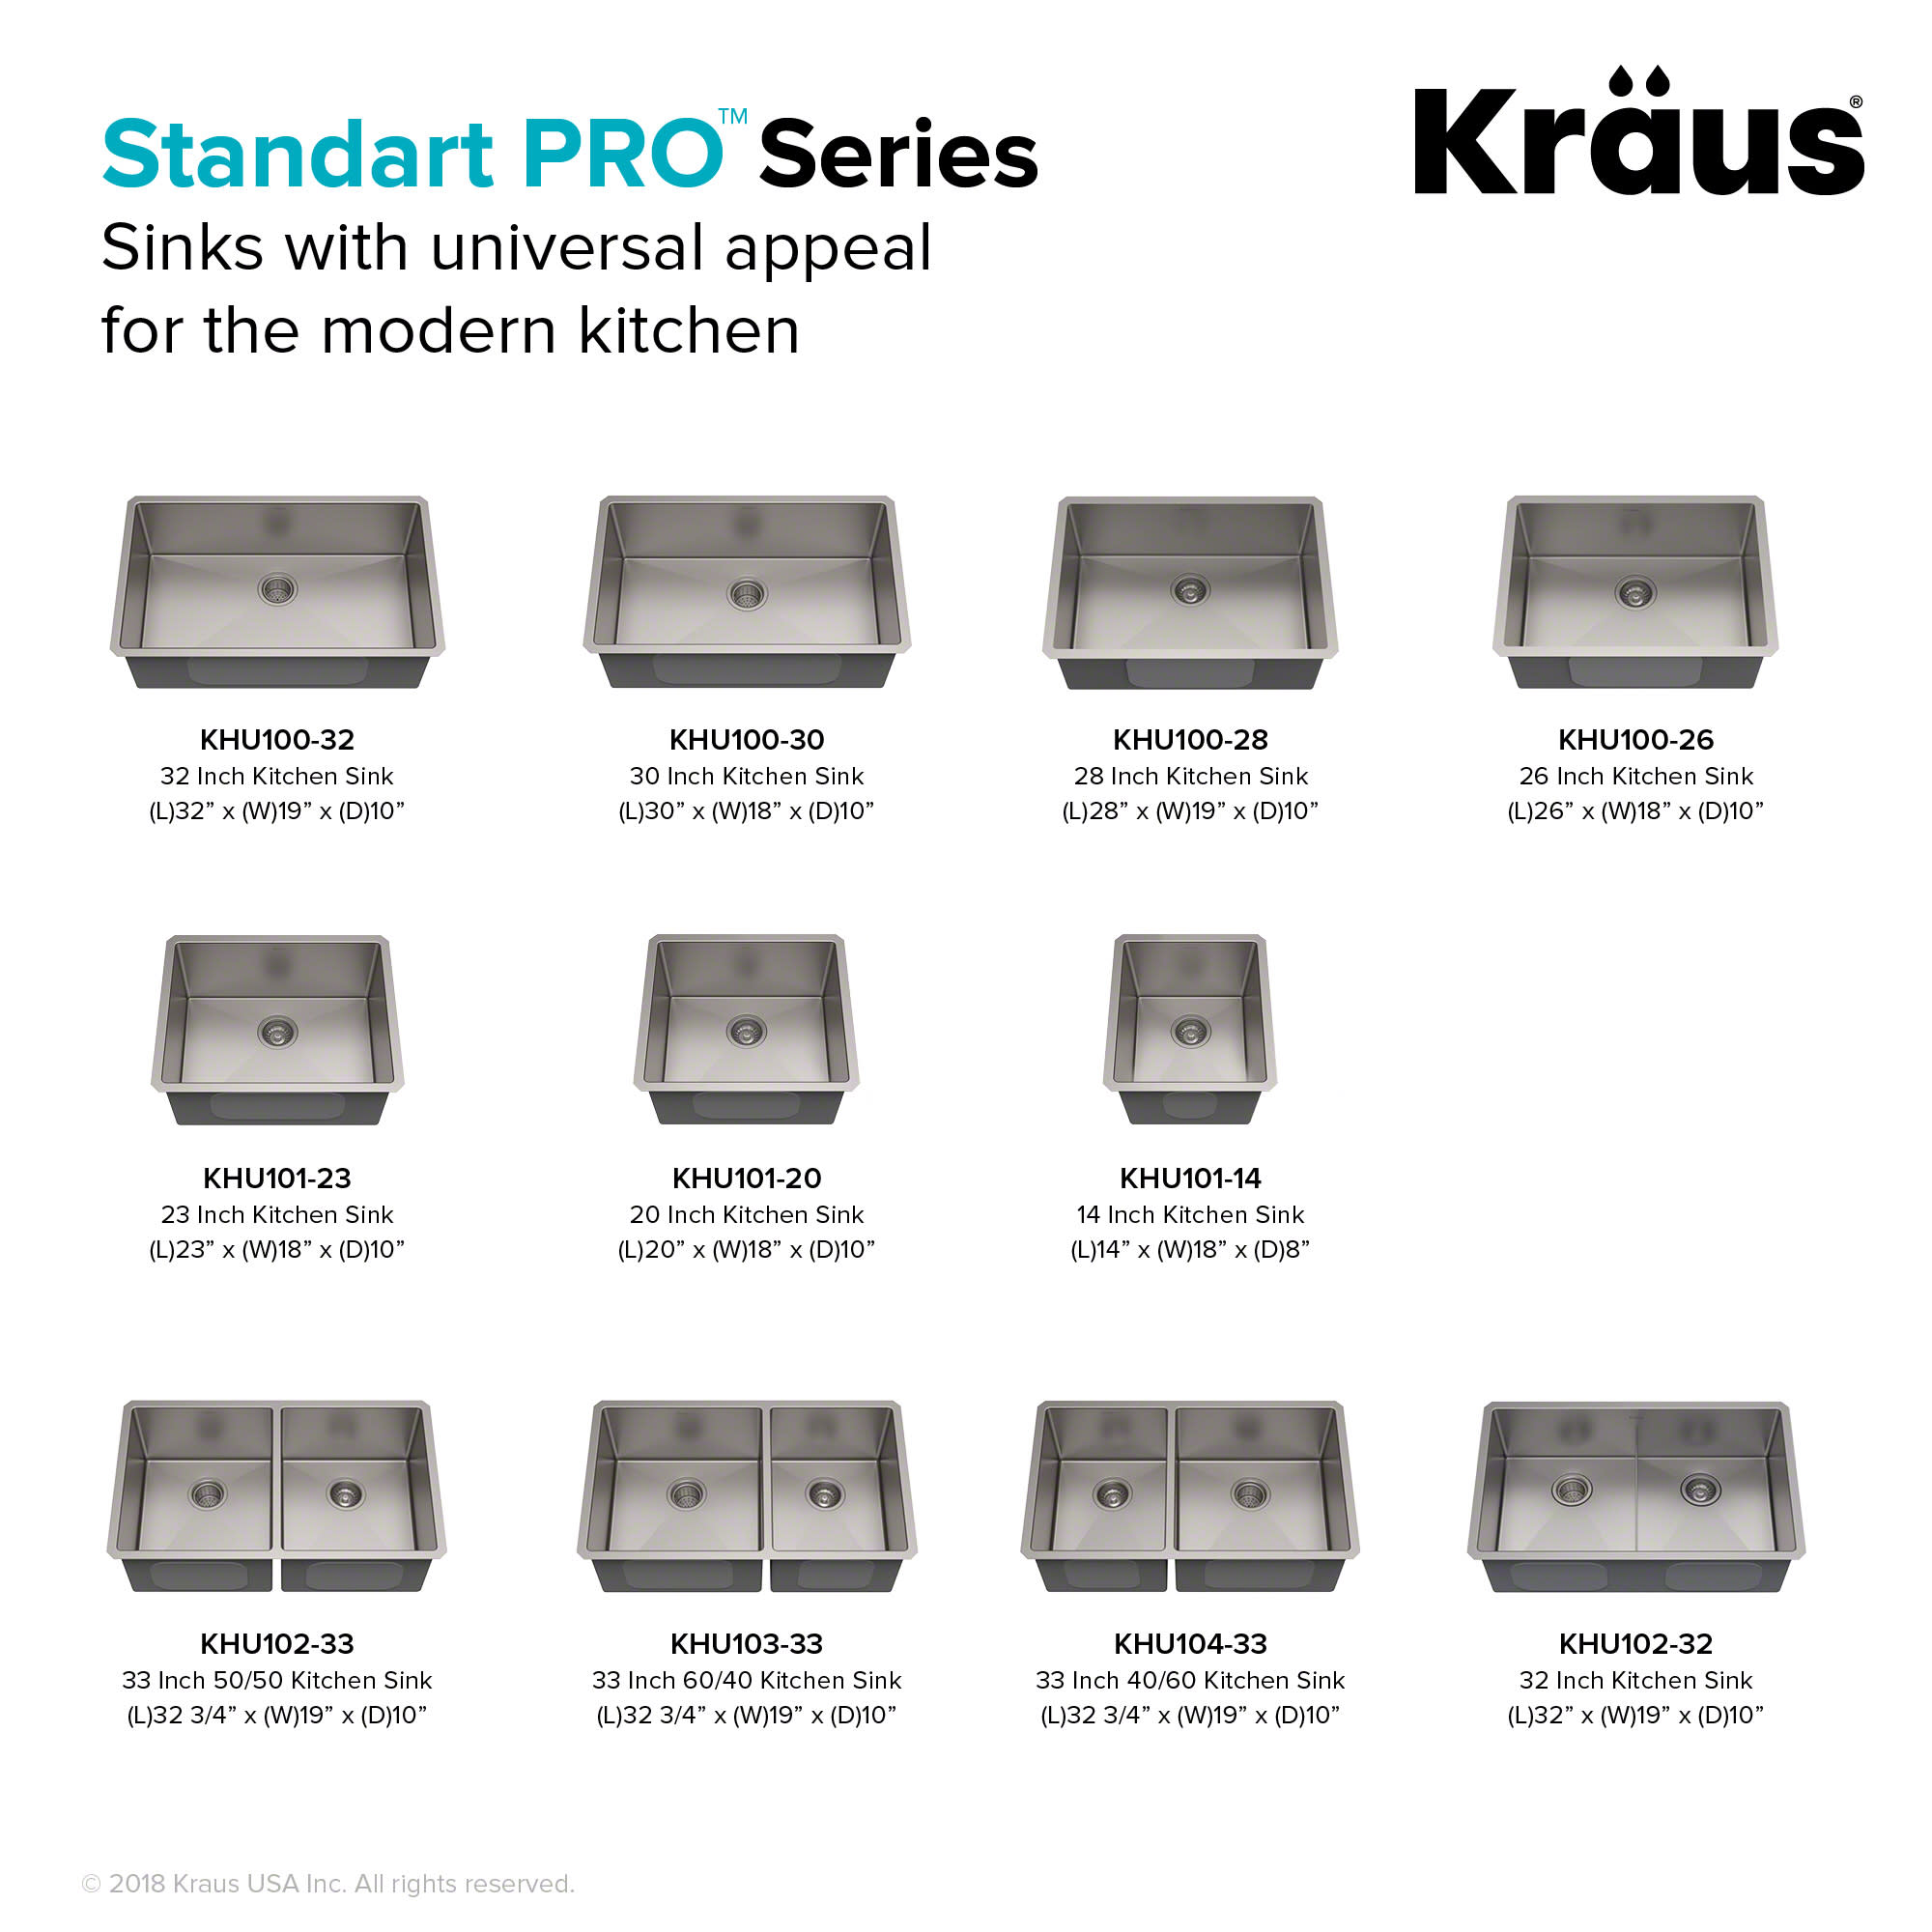 Kraus Khu100 26 Standart Pro 26 Undermount Single Bowl Stainless Steel Kitchen Sink With Noisedefend Soundproofing Qualitybath Com